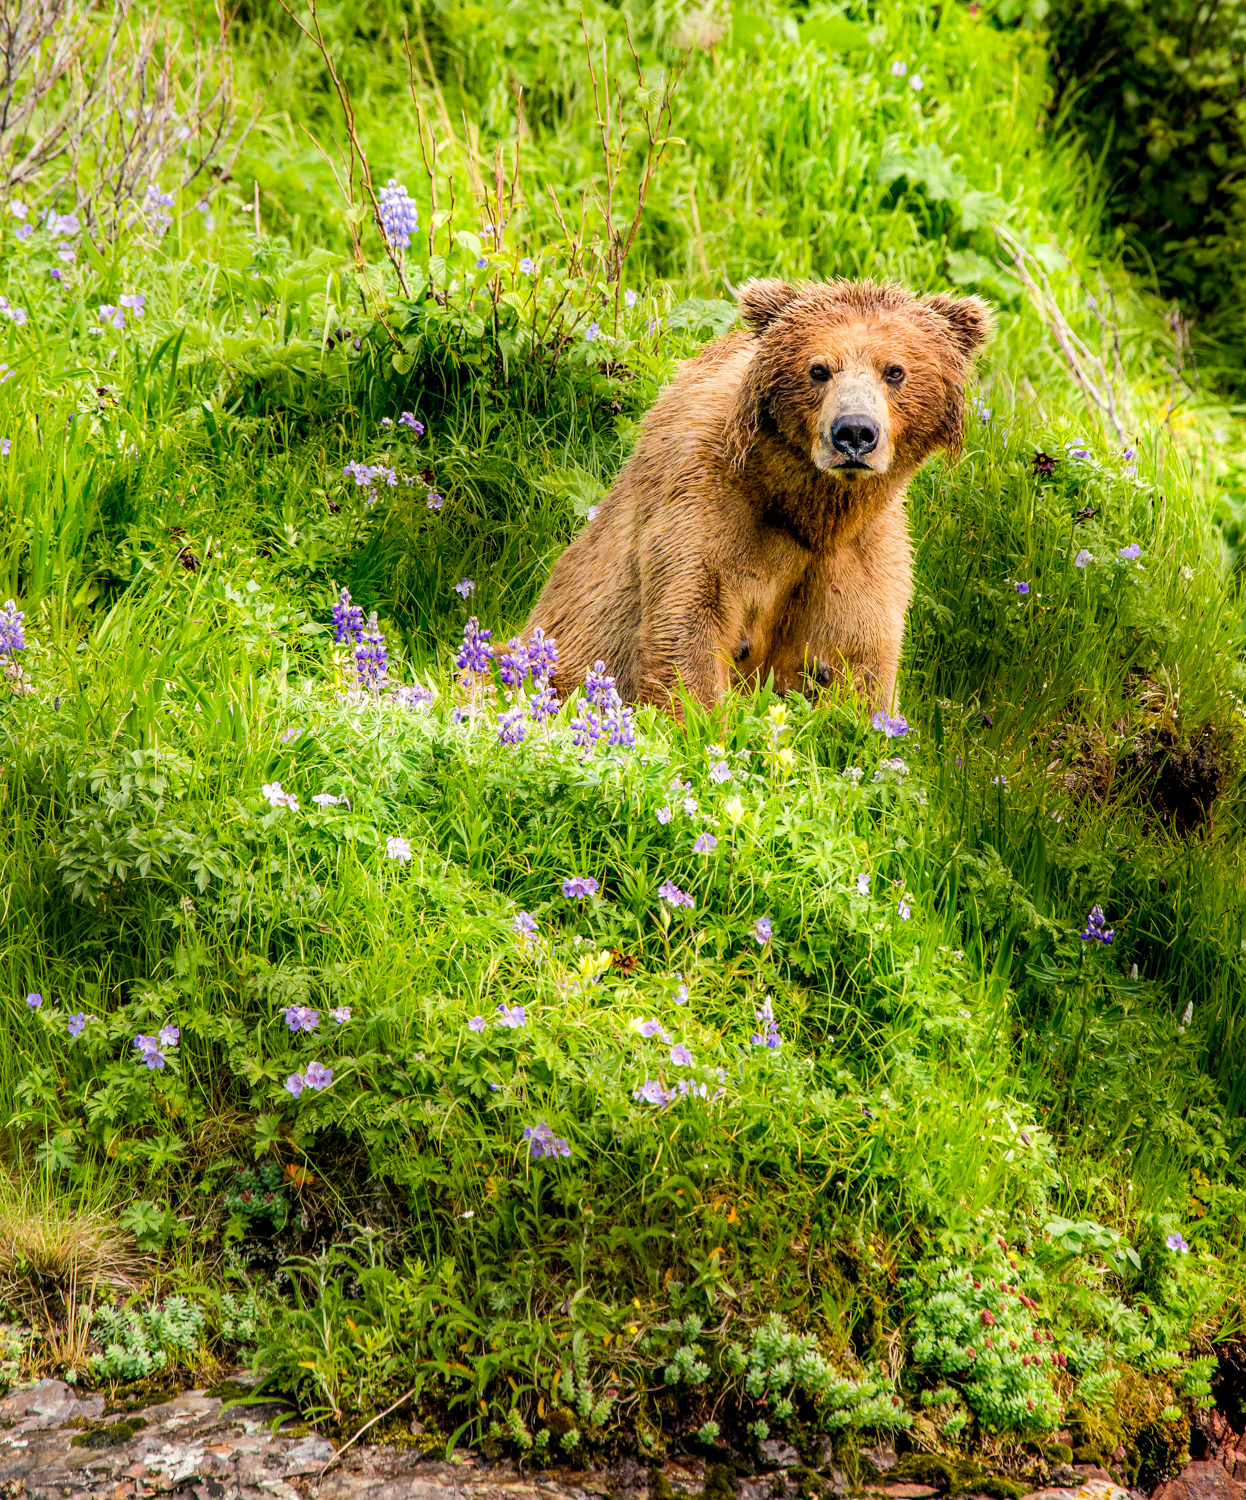 Coastal brown bear.